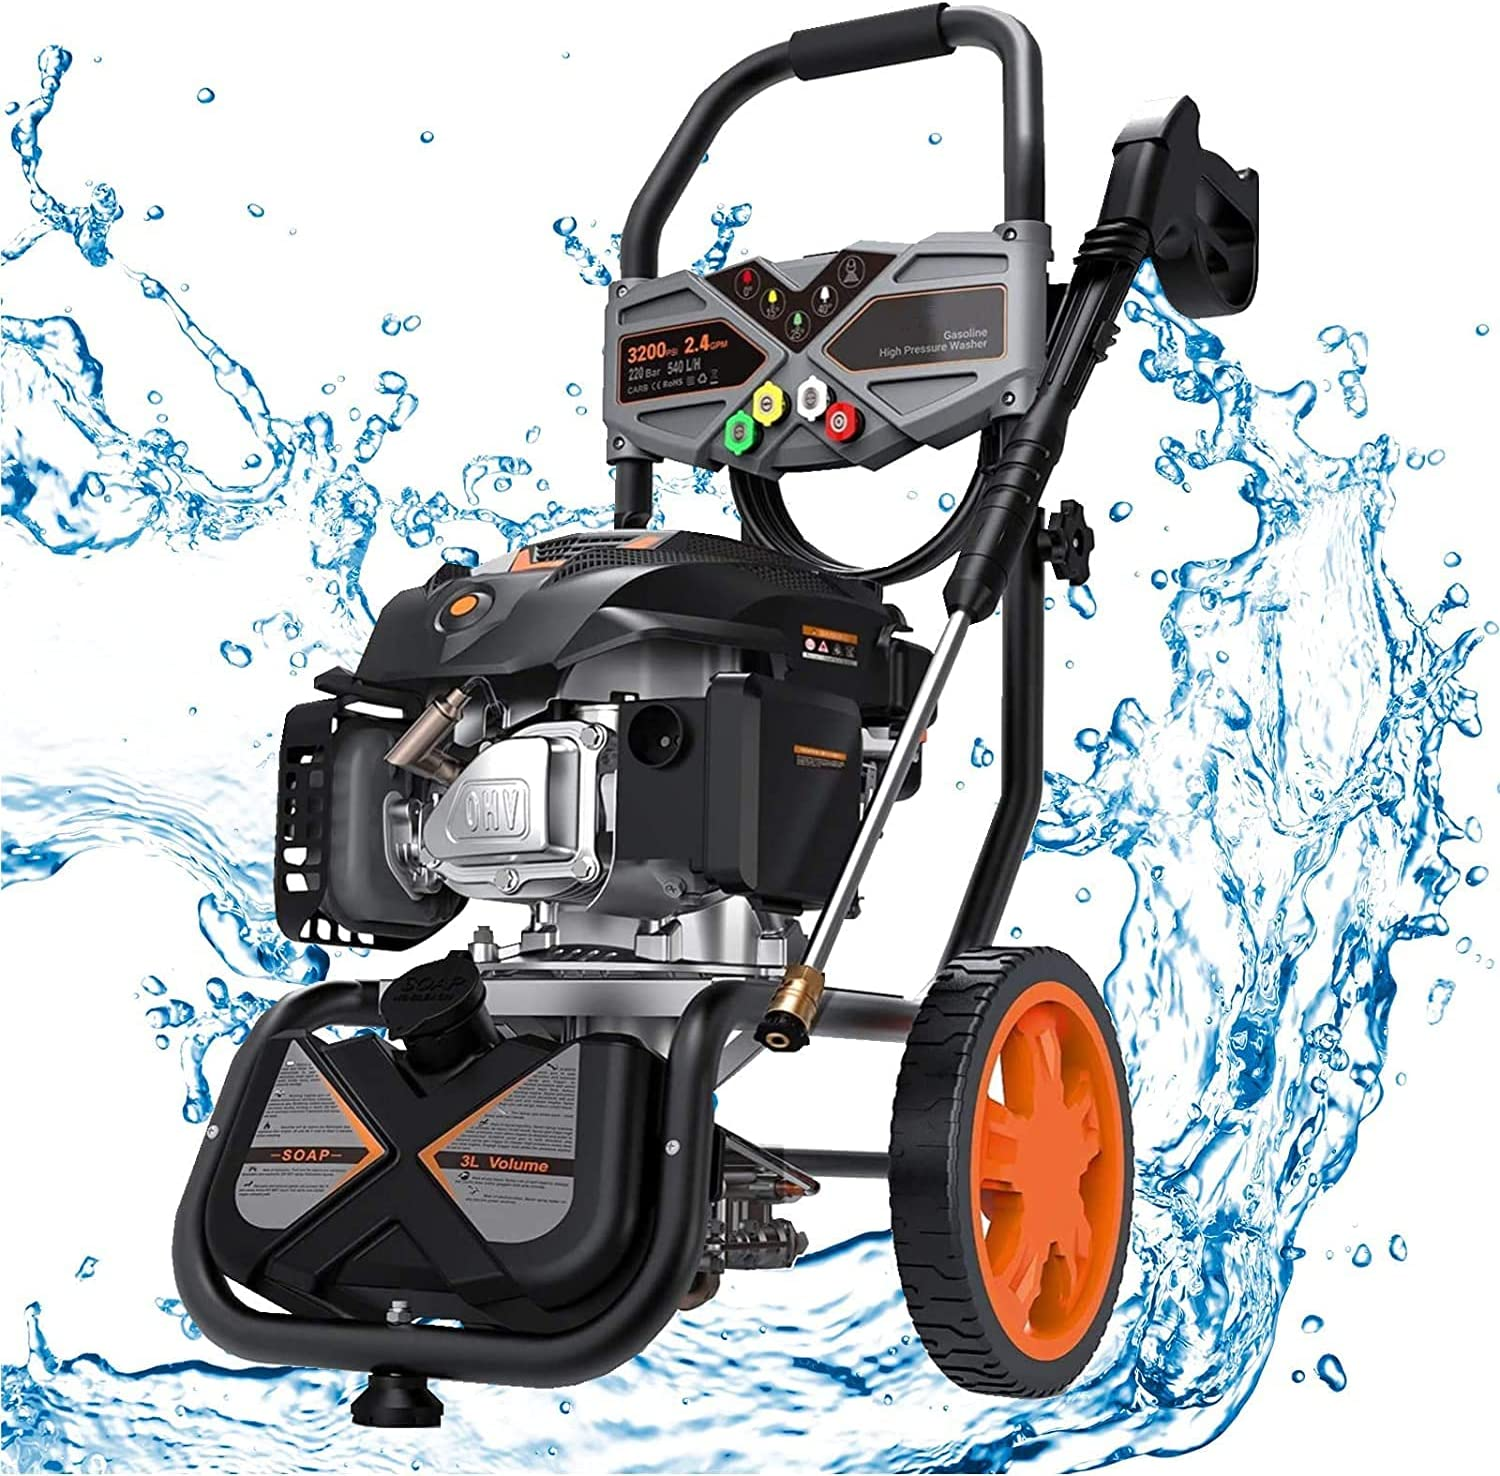 Tacklife 3200 PSI  2.4 GPM Gas Pressure Washer  $149.99 Coupon